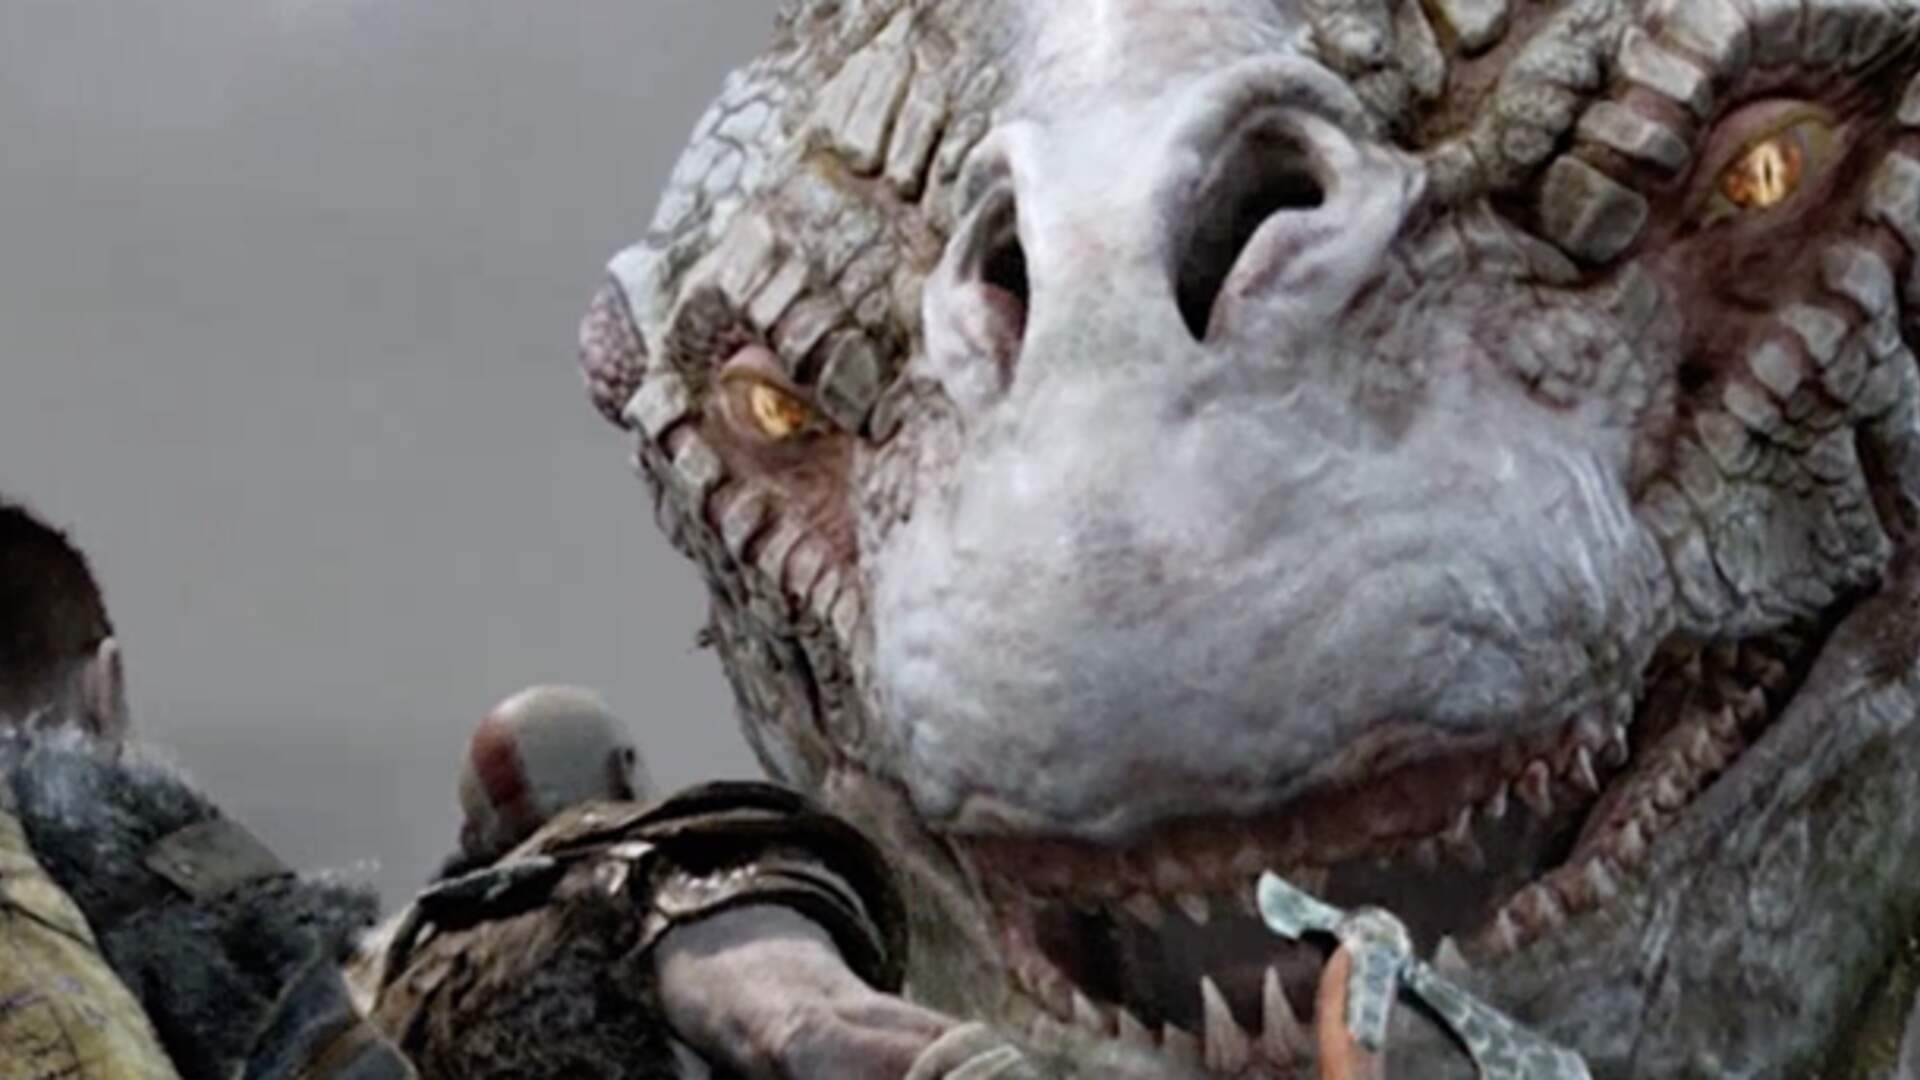 God of War Director, Cory Barlog, Reacts Wonderfully to Reviews